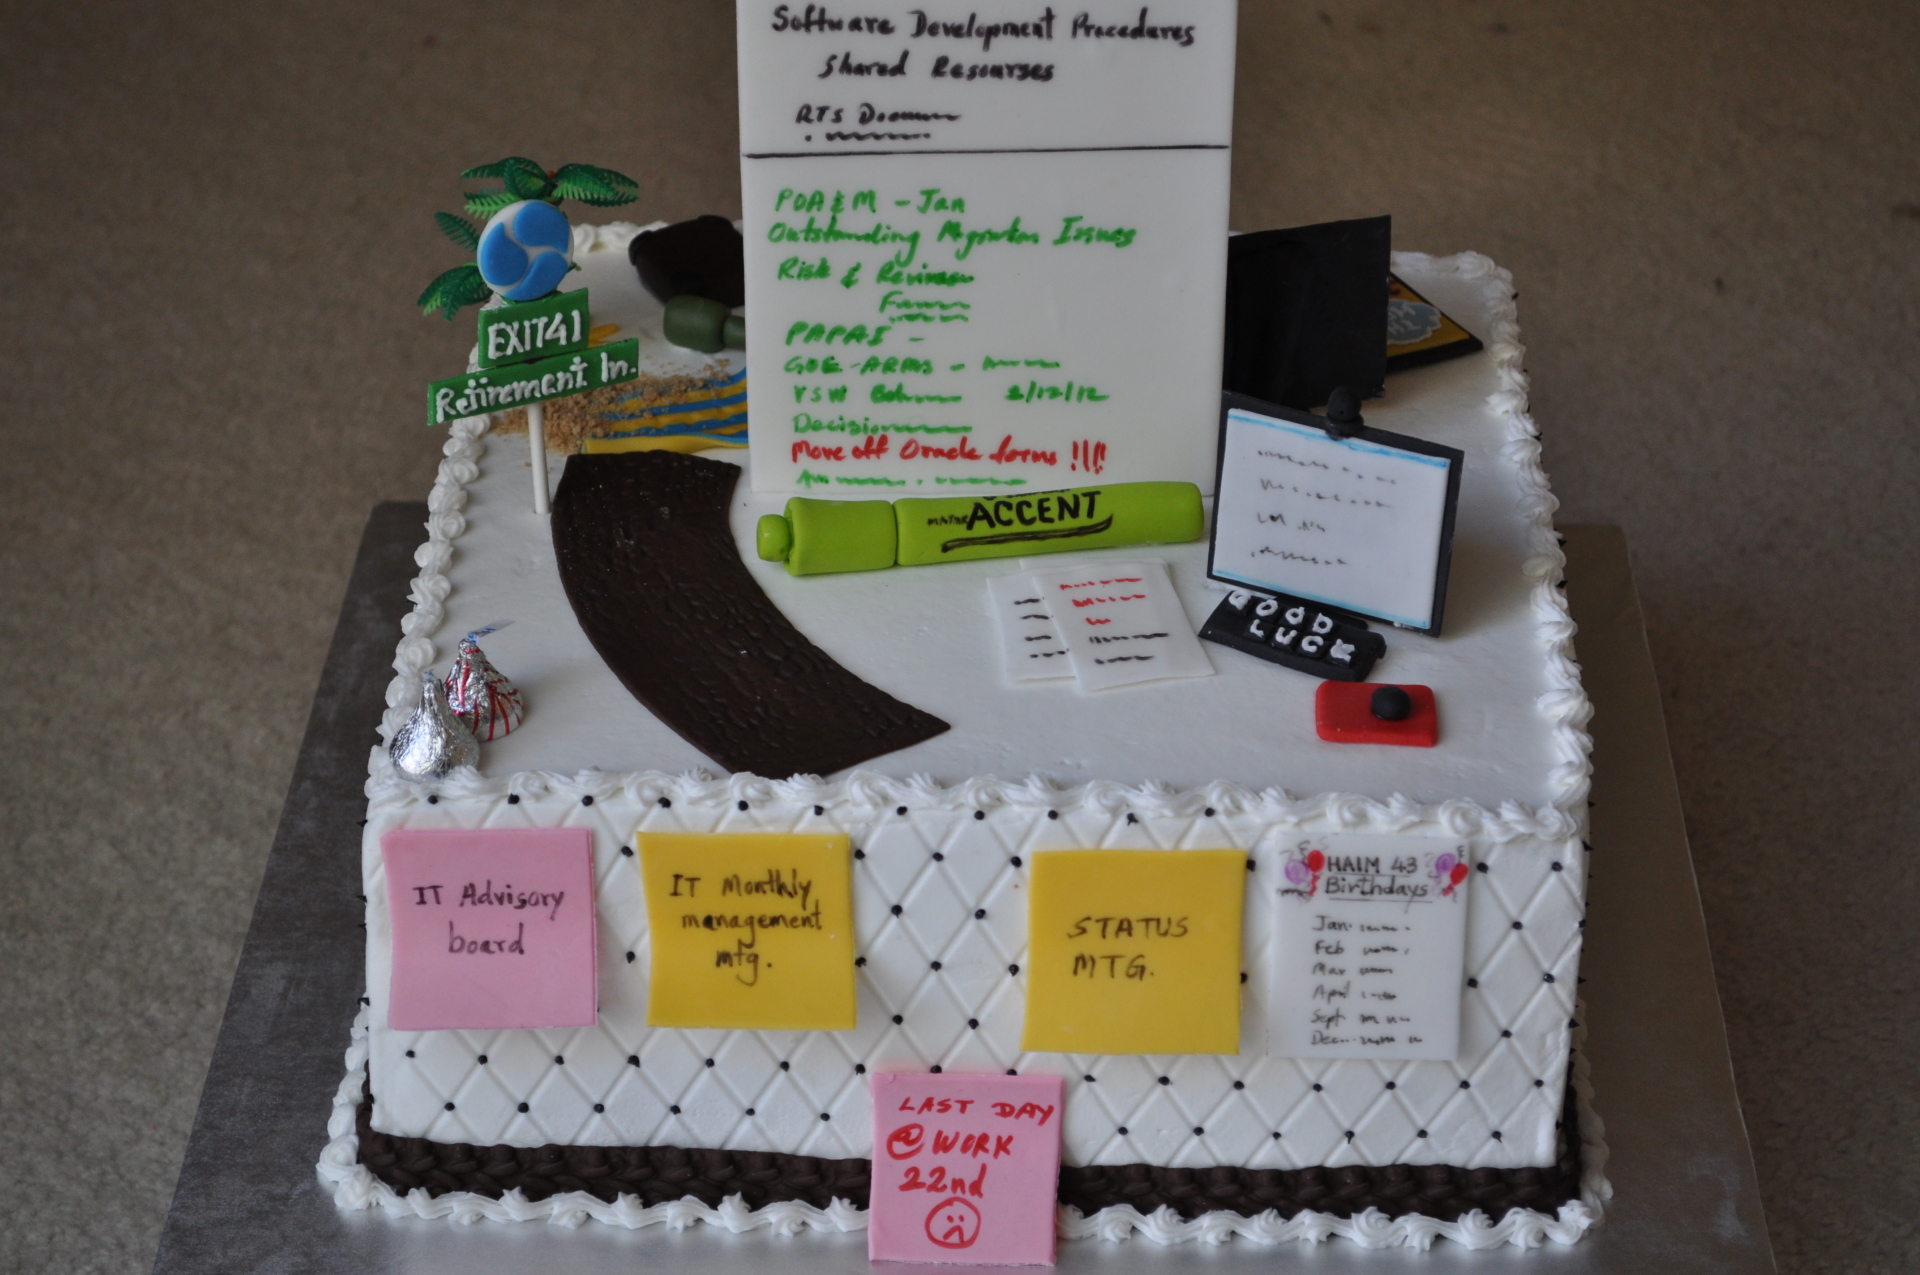 Personalized retirement cake